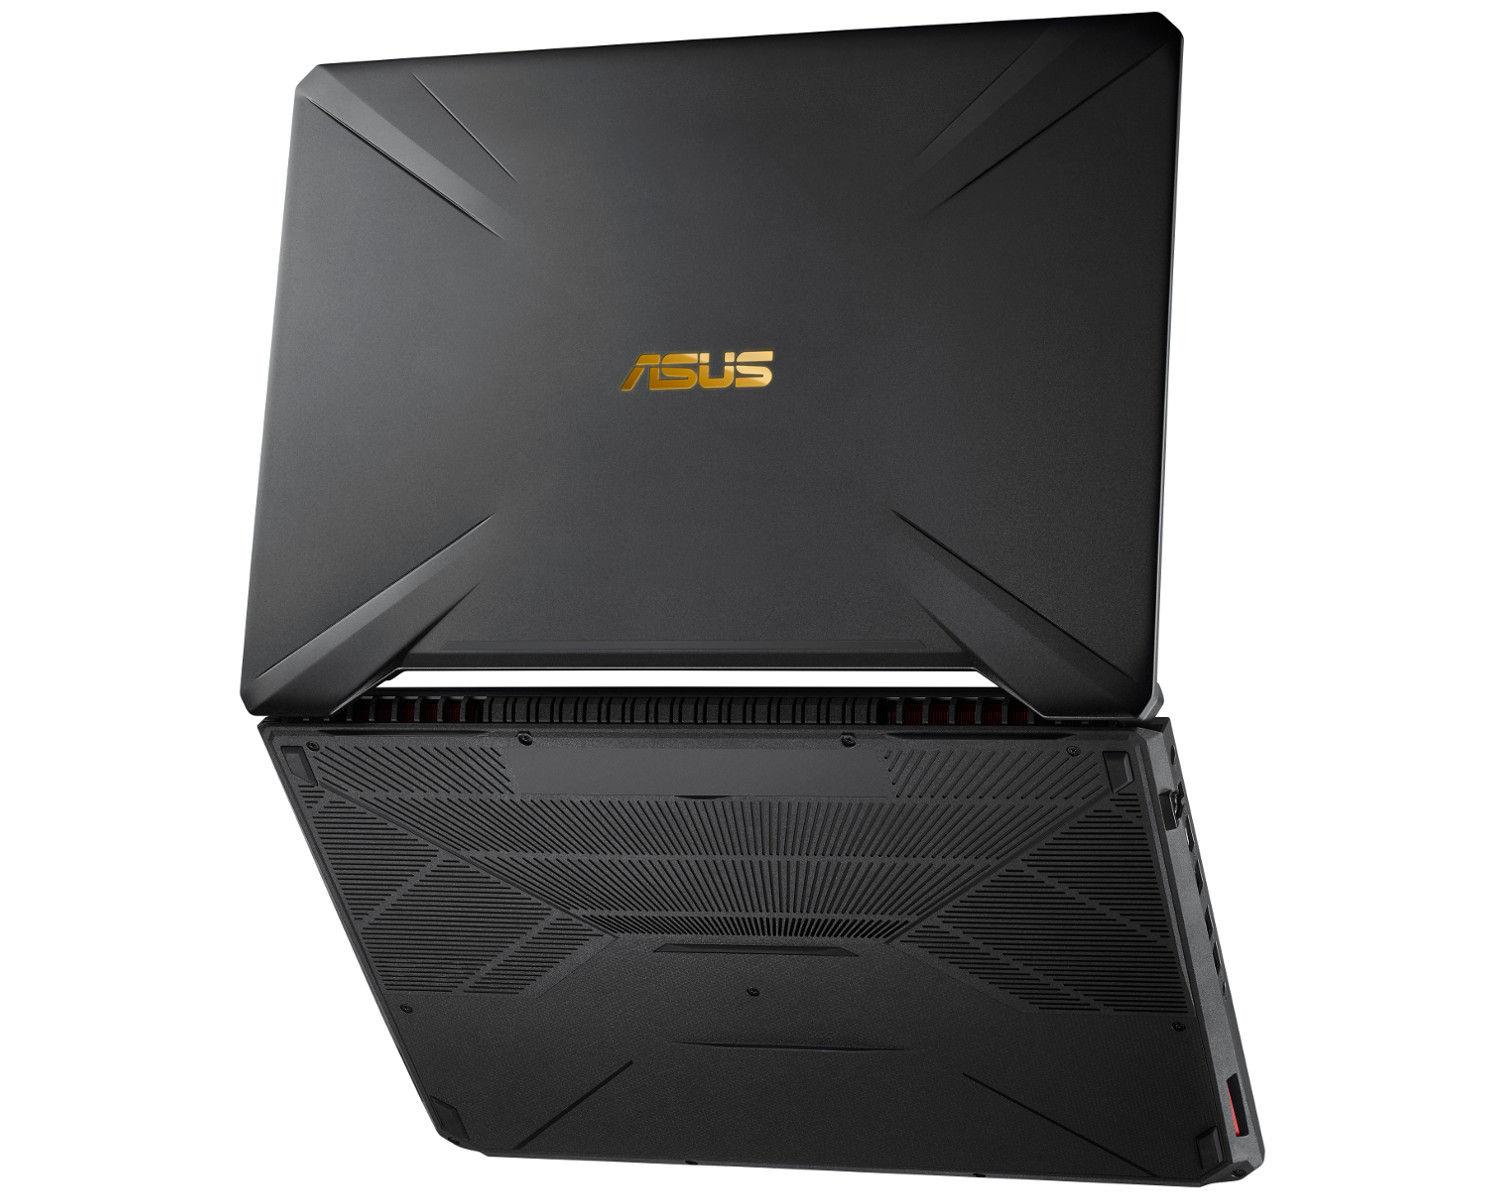 Ordinateur portable Asus TUF 565GE-AL352 Noir/Gold - IPS 120Hz, GTX 1050 Ti, Sans Windows - photo 5